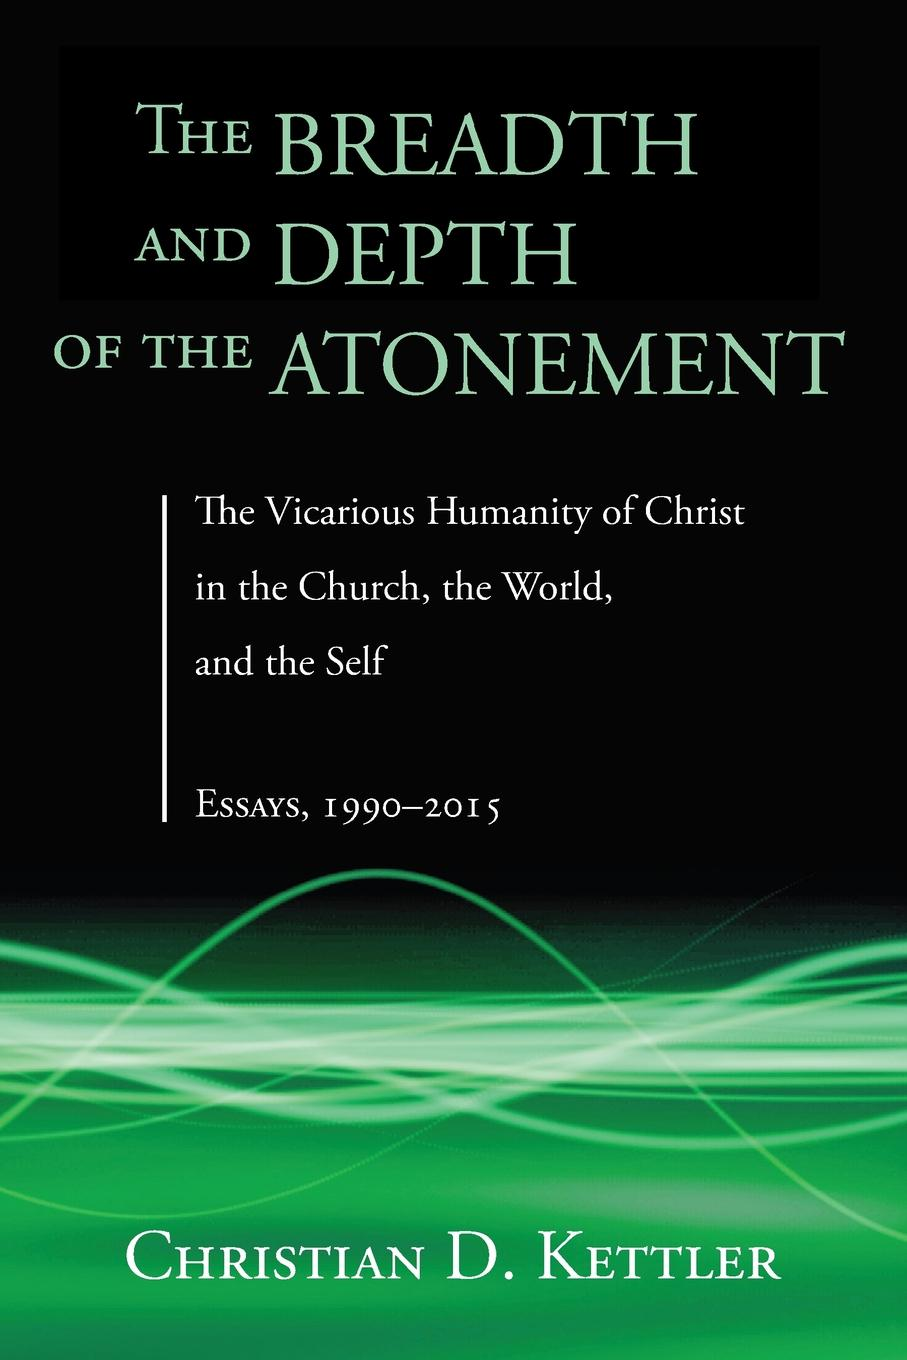 Christian D. Kettler The Breadth and Depth of the Atonement